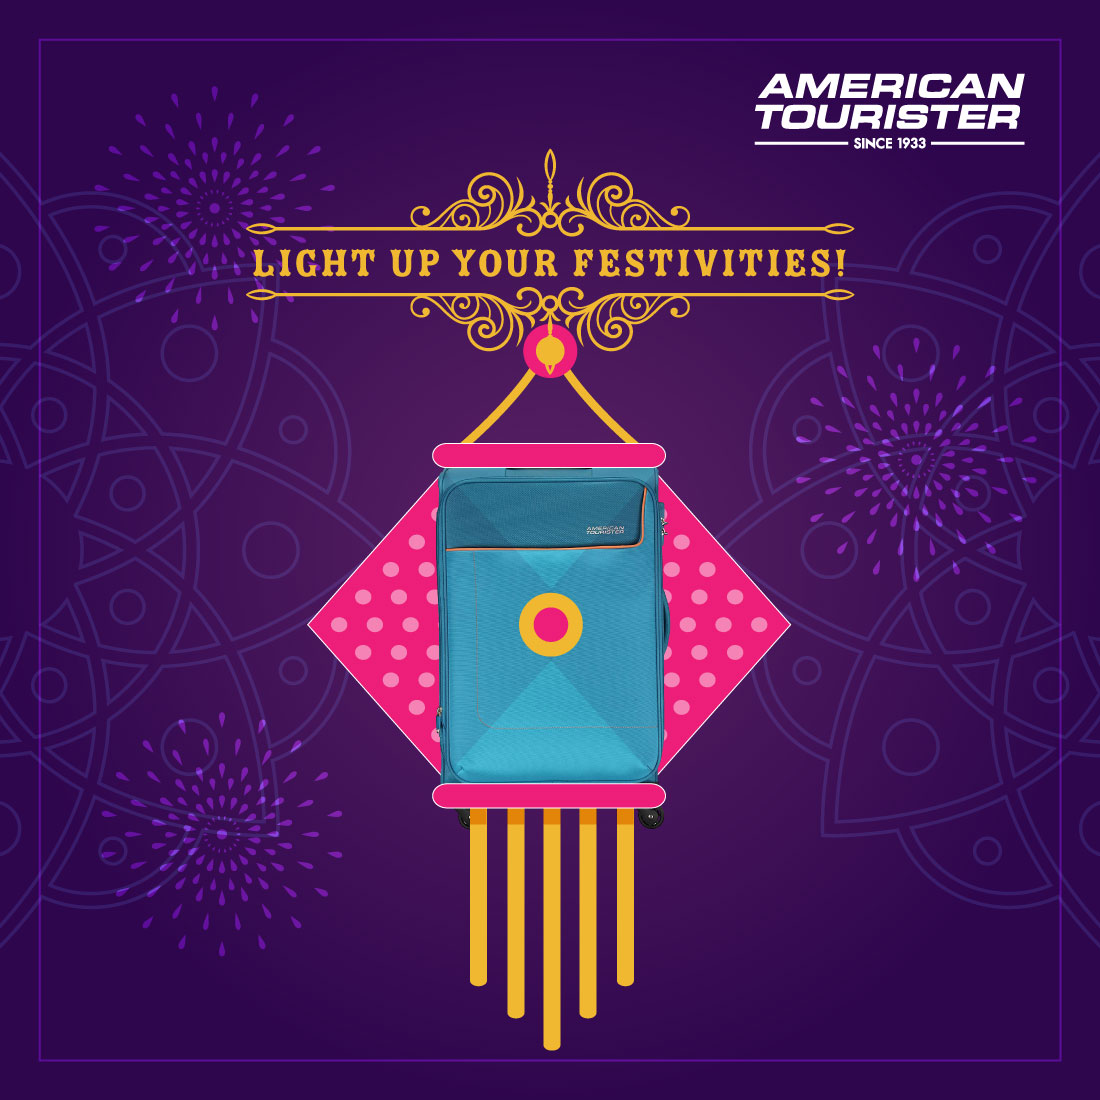 Celebrate this joyous festival with family and friends and plan countless future travels together! #diwali #diwali2020 #AmericanTourister